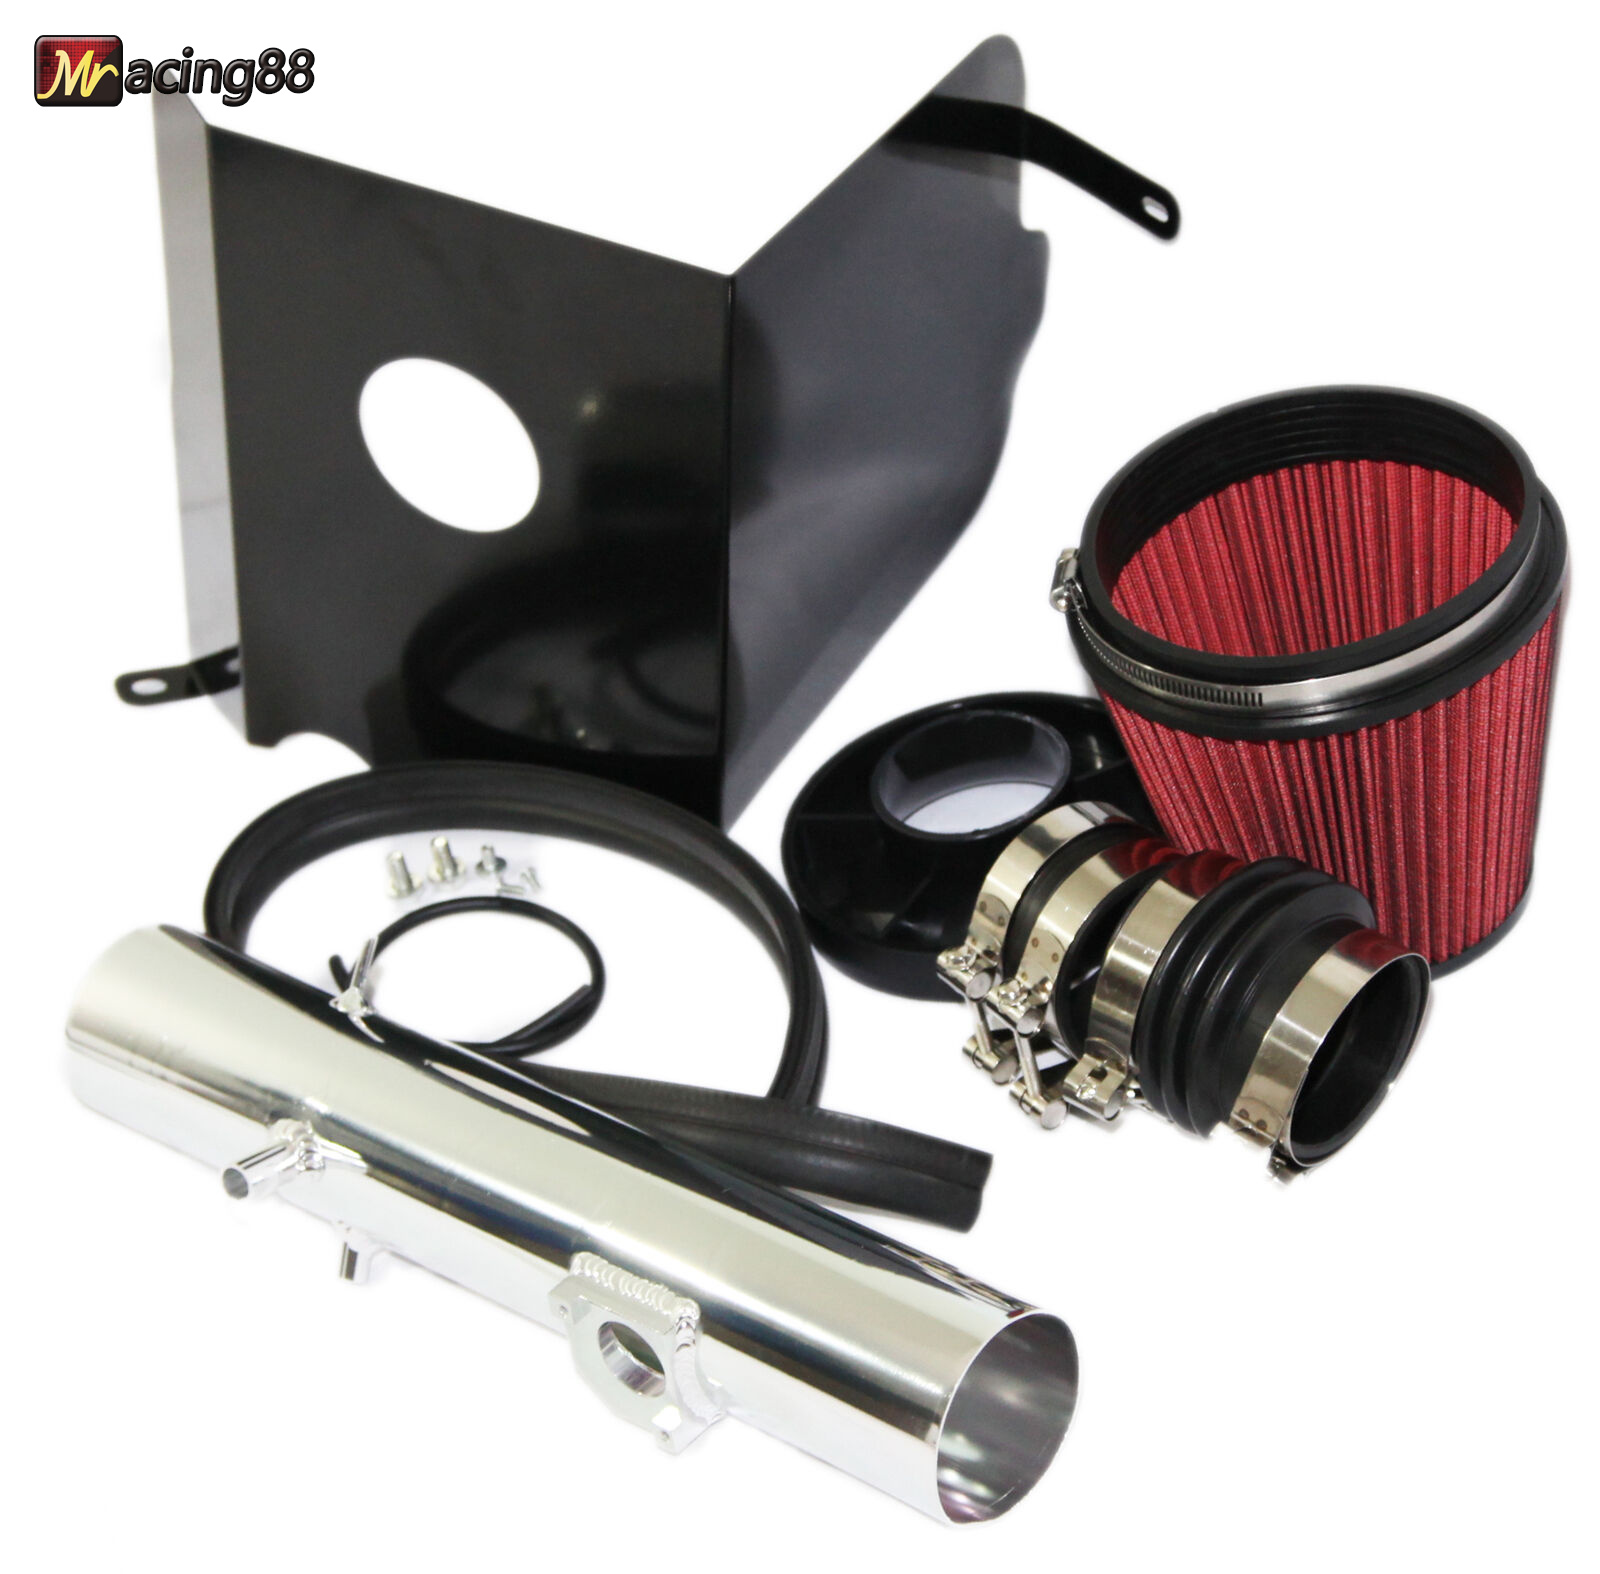 RED Cold Air Intake Kit+Heat Shield for  05-11 Toyota Tacoma 4.0L V6